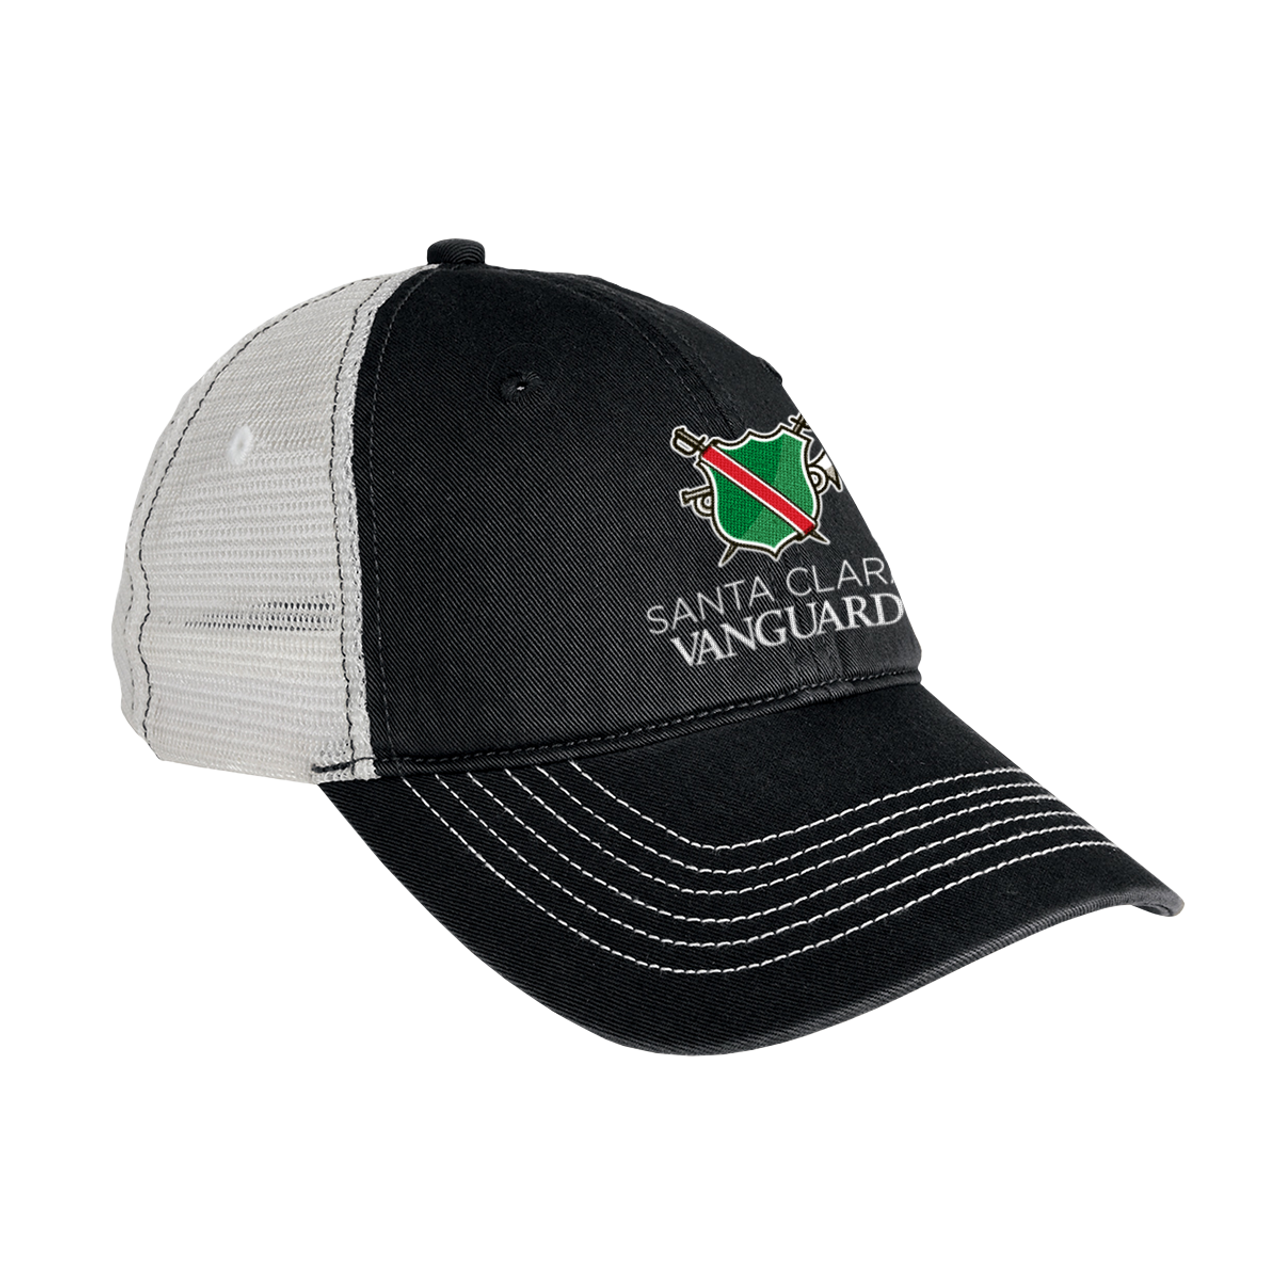 Santa Clara Vanguard Logo Cap 67 Pro Shop Vanguard Music Performing Arts